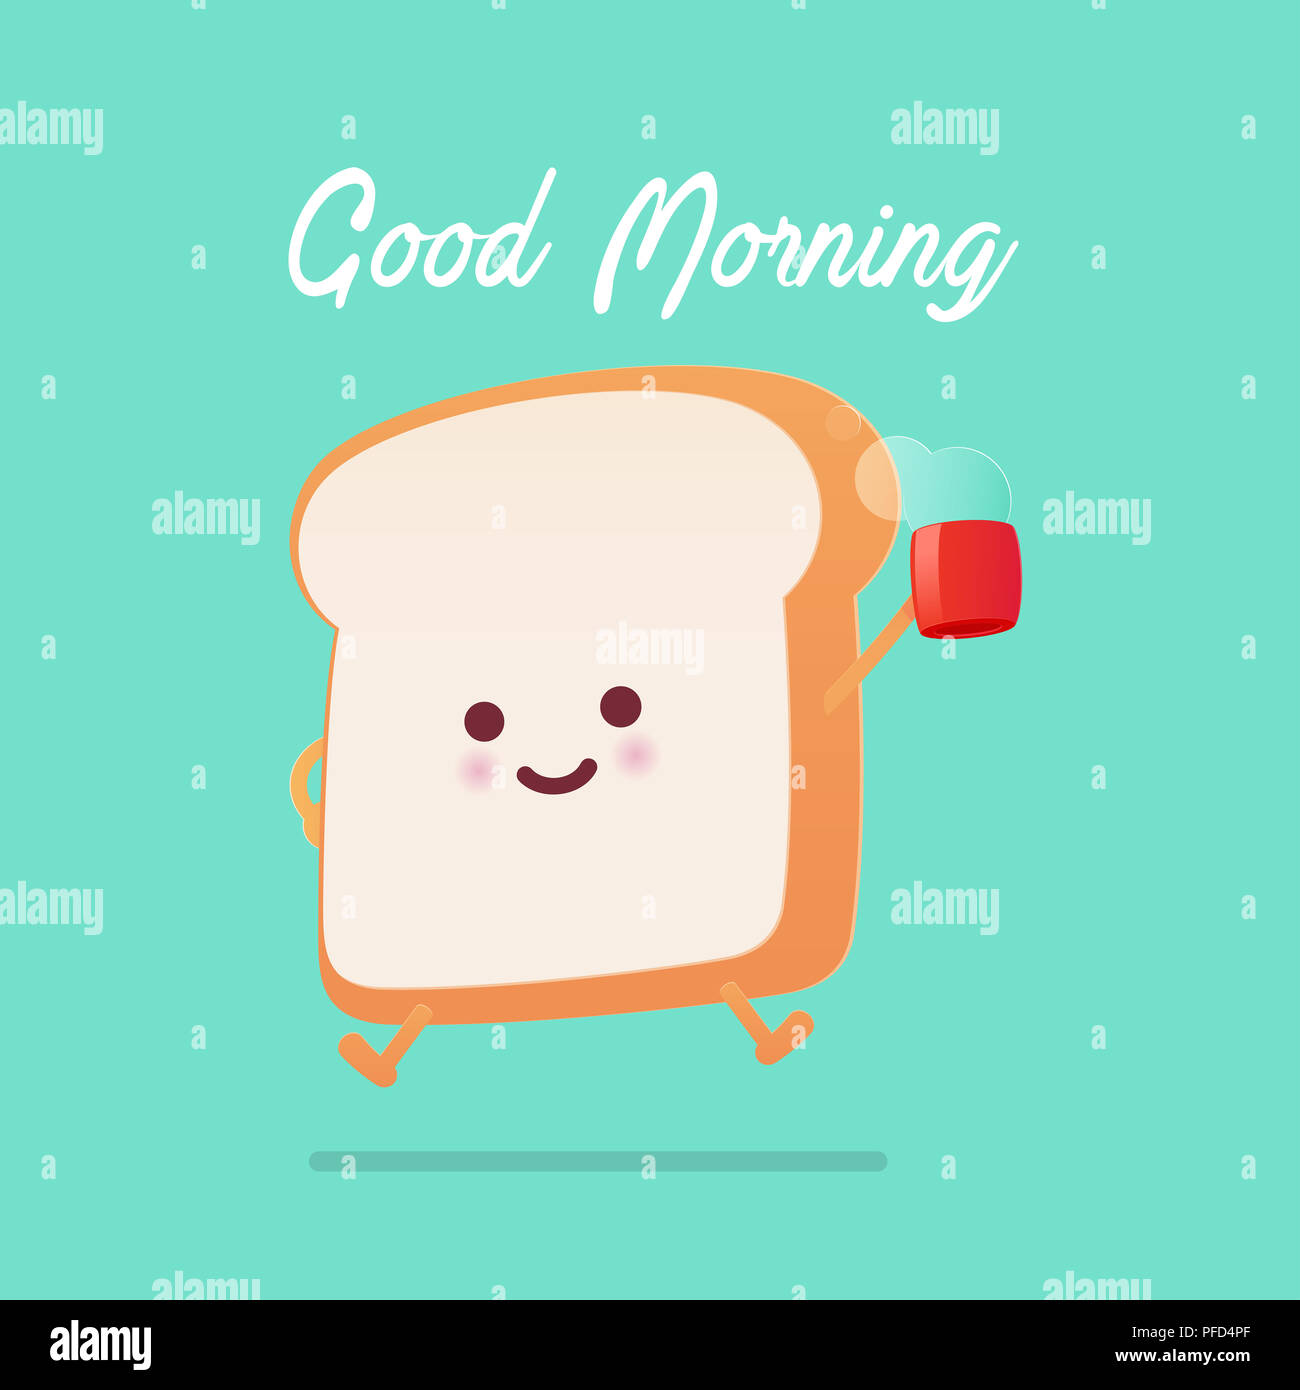 Good Morning Greeting On Toasted Bread Cartoon Against Green